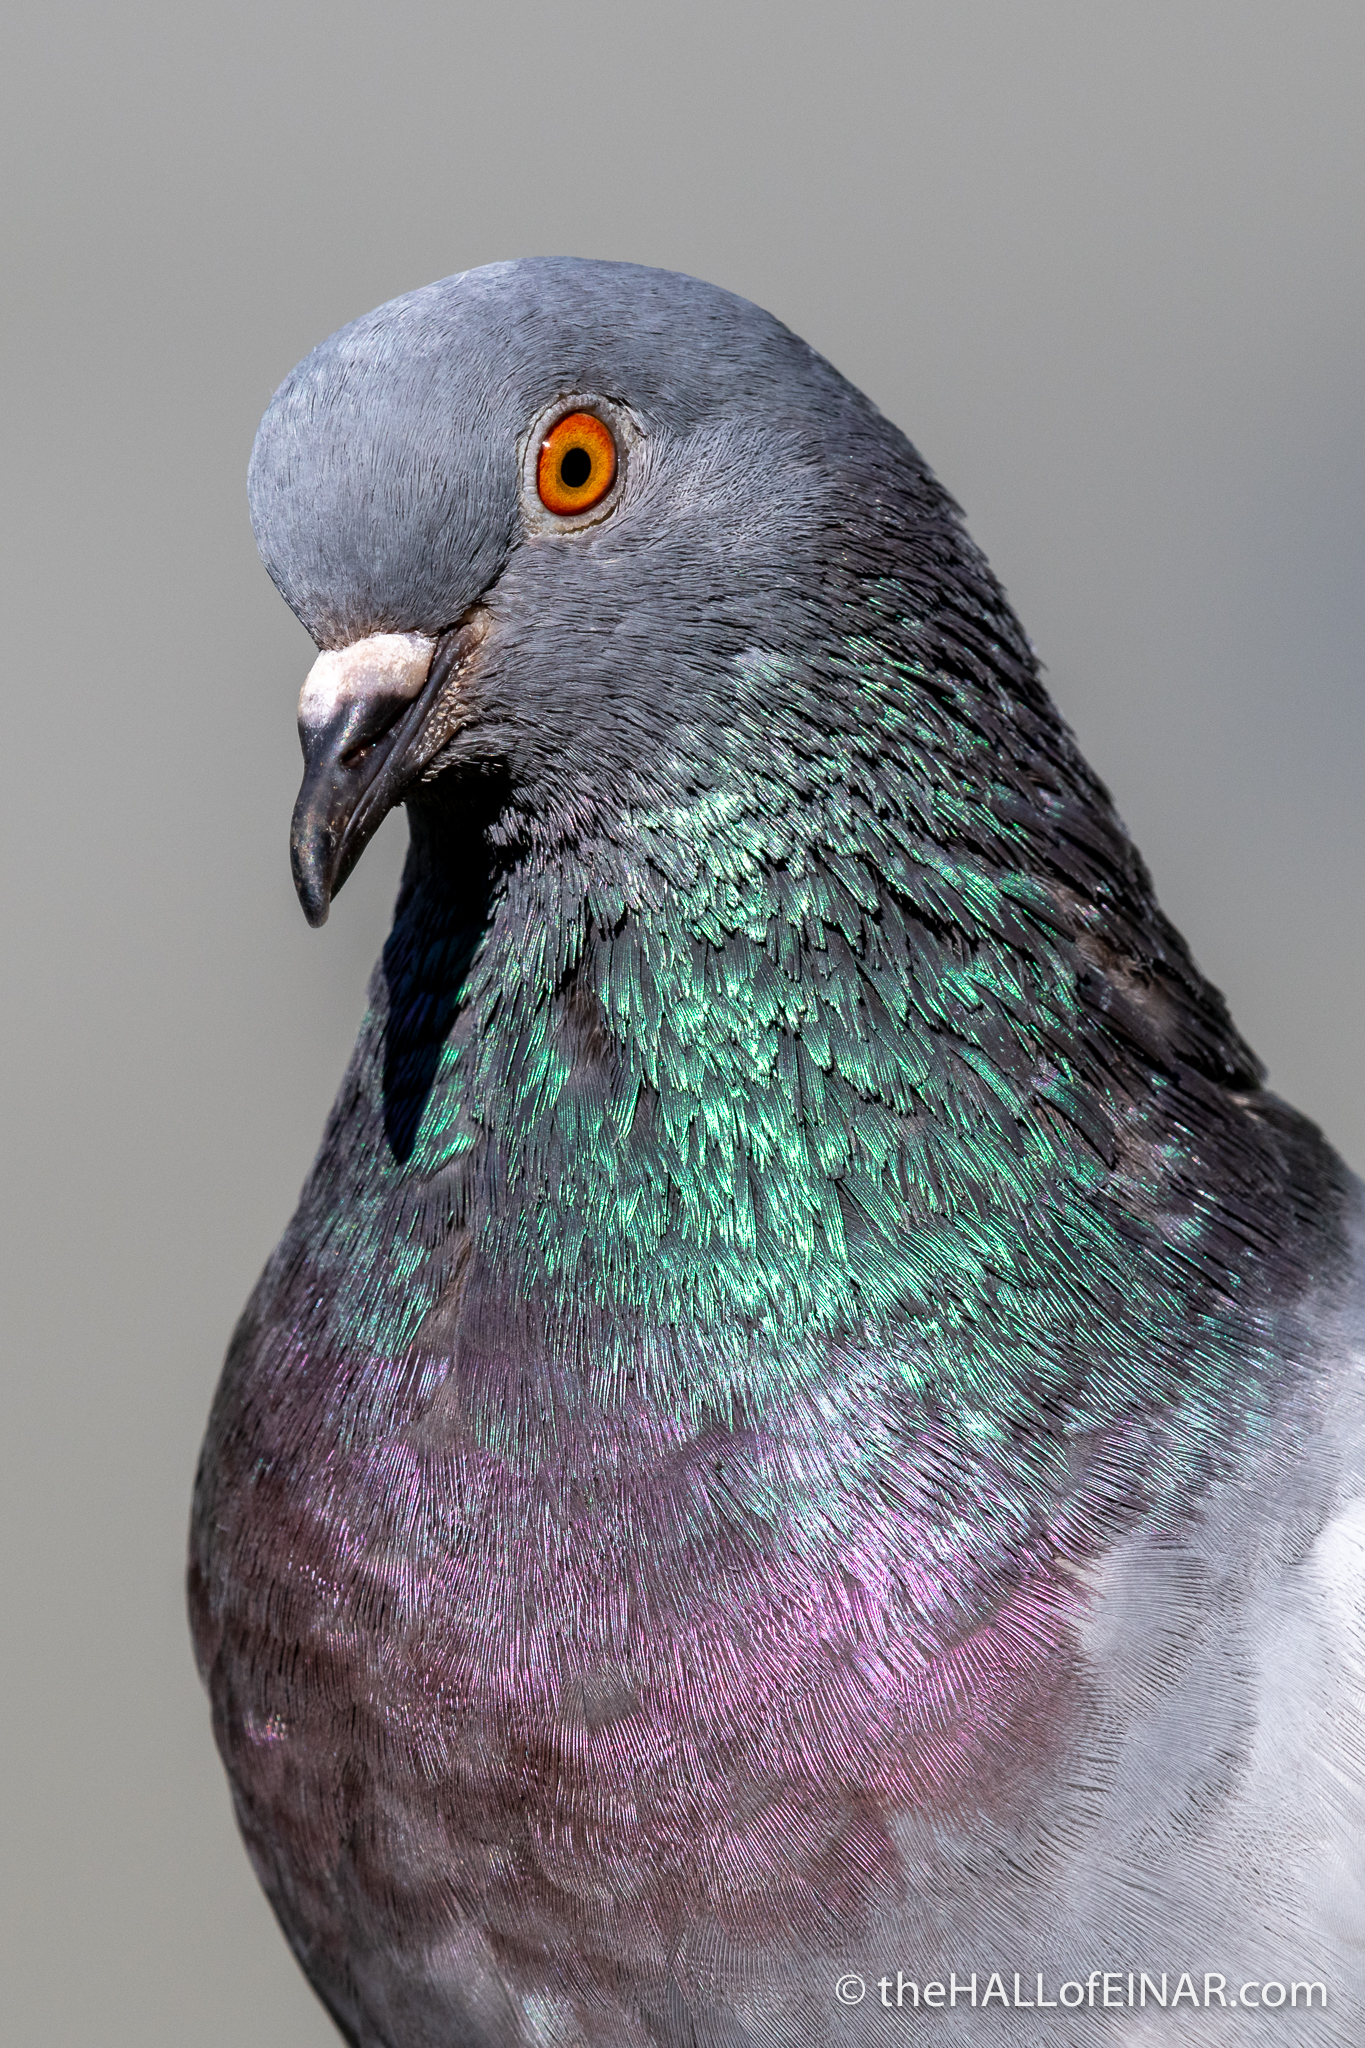 Feral Pigeon - Villa Pamphilj - The Hall of Einar - photograph (c) David Bailey (not the)